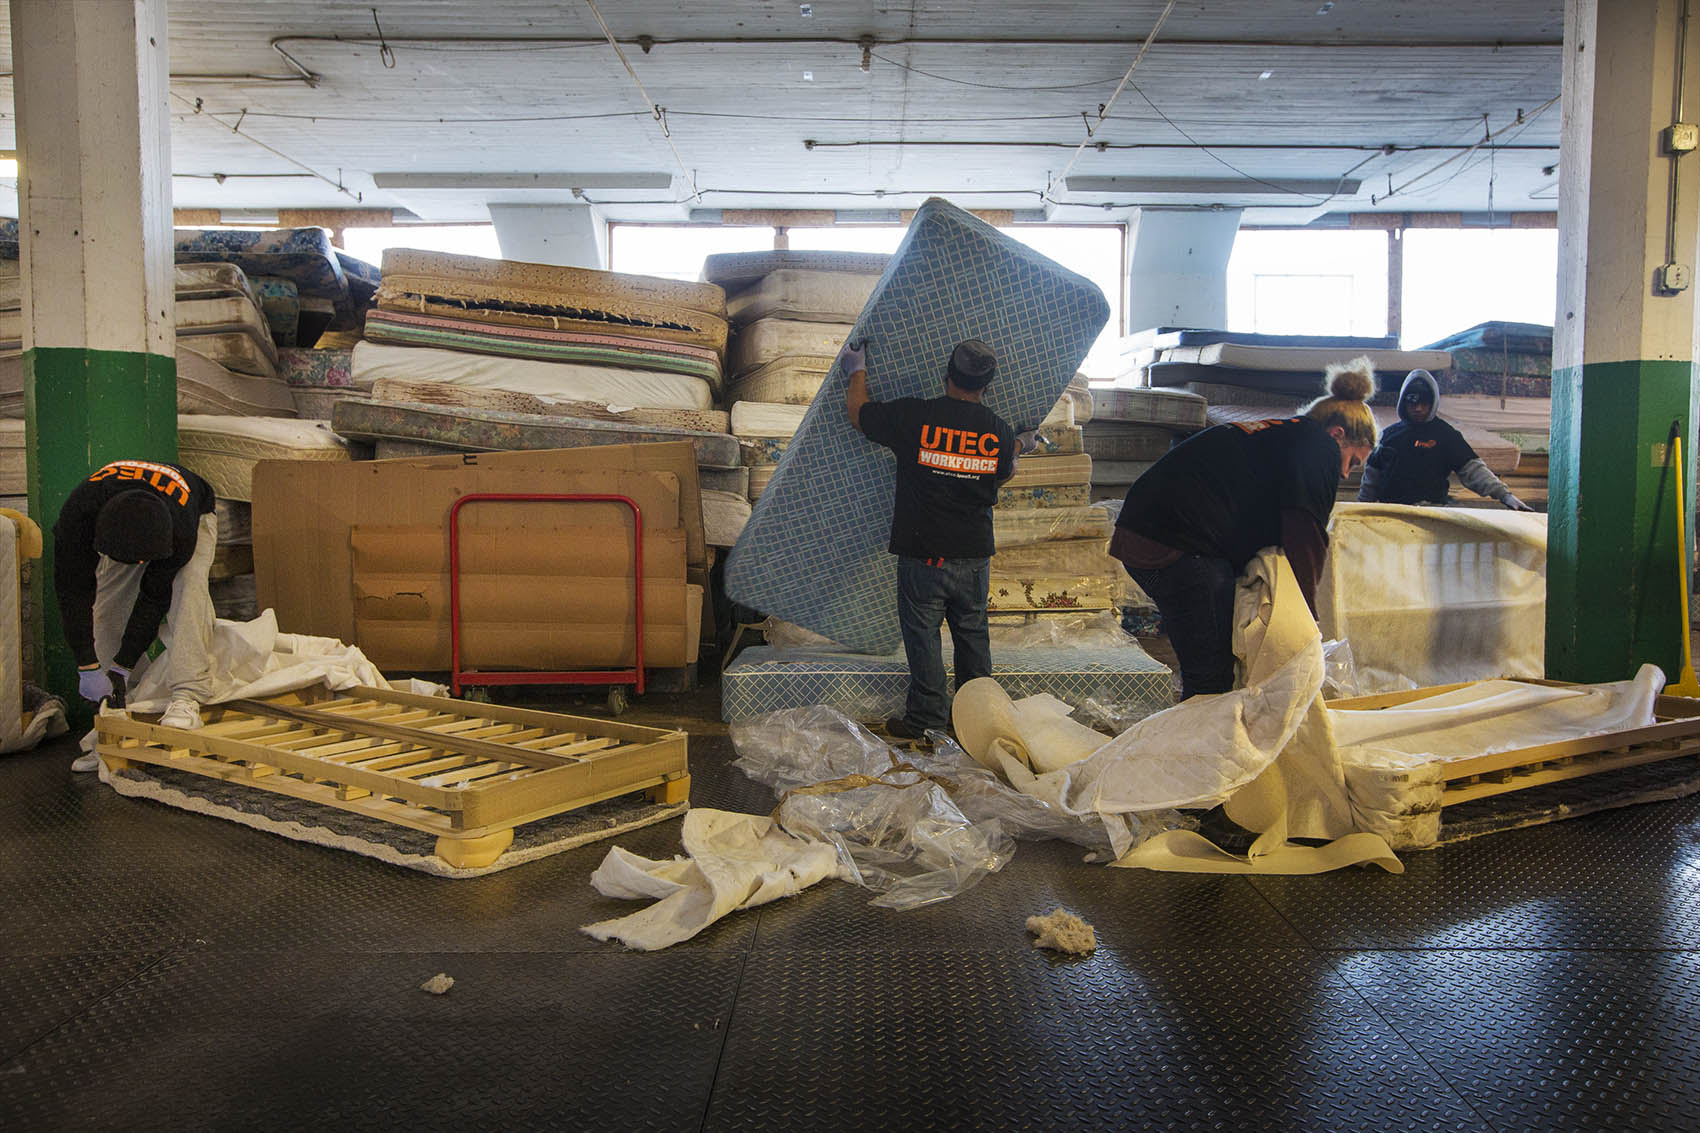 Workers at the UTEC mattress warehouse break down piles of mattresses. (Jesse Costa/WBUR)